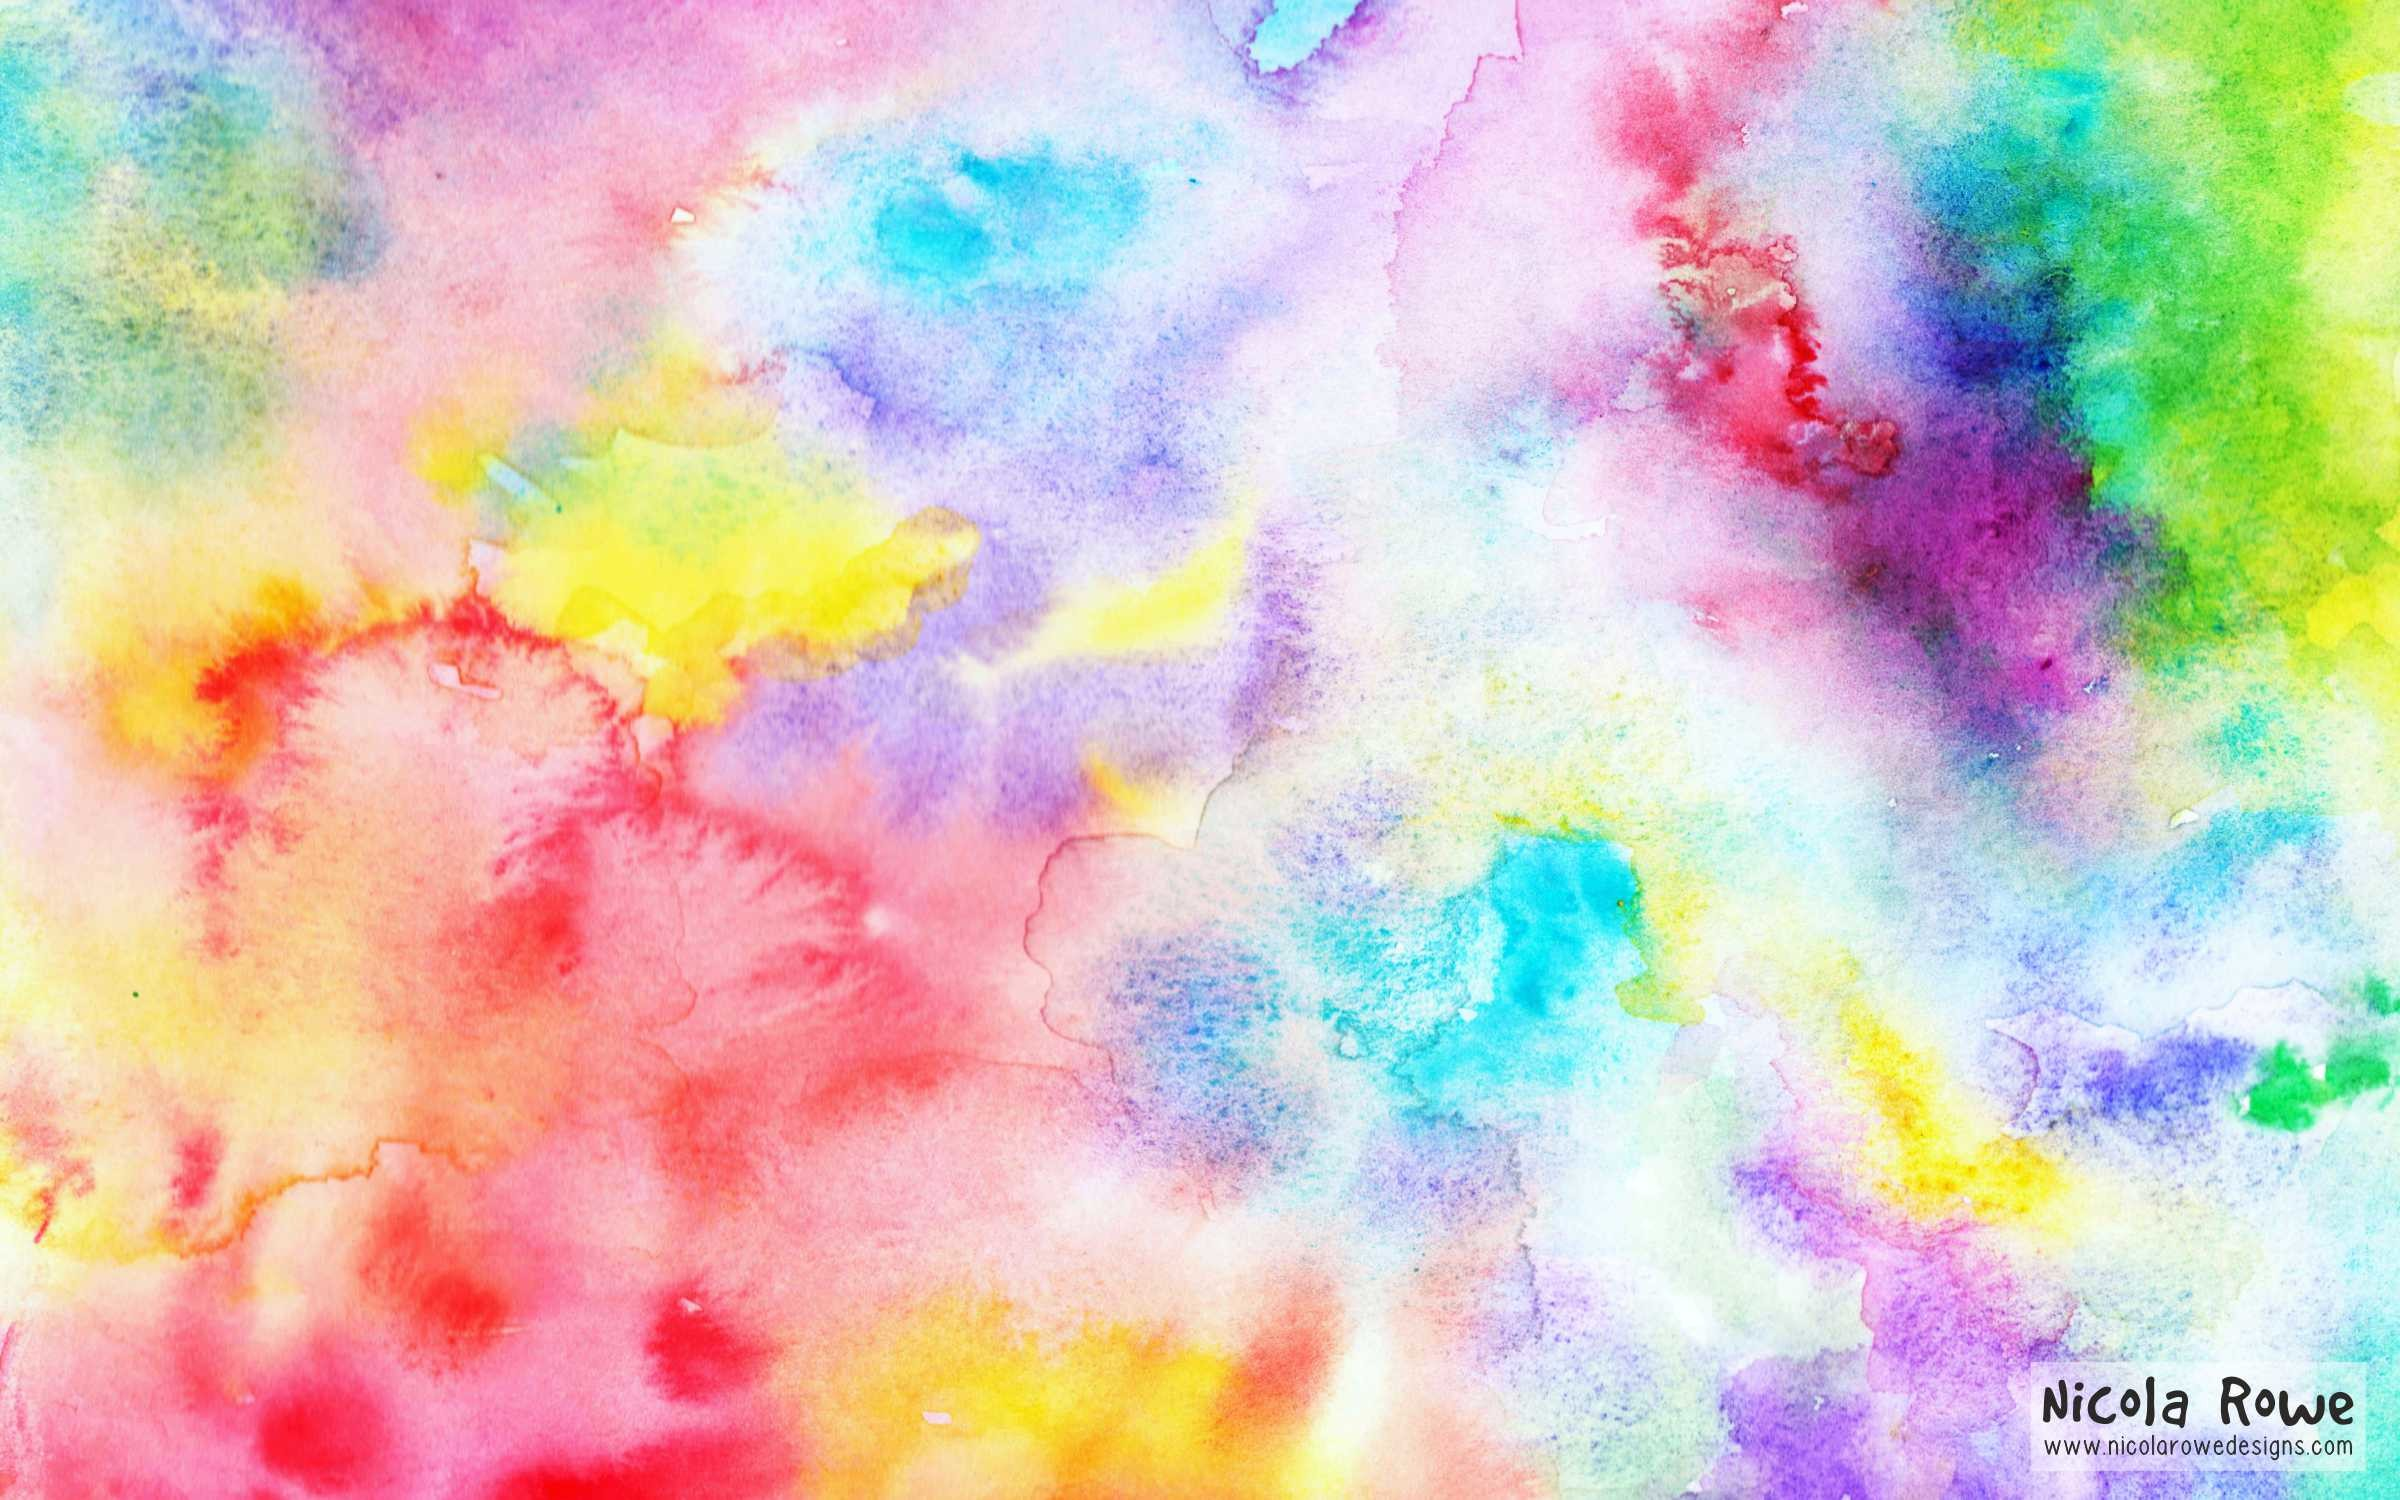 2400x1500 Watercolour wallpaper Nicola Rowe designs